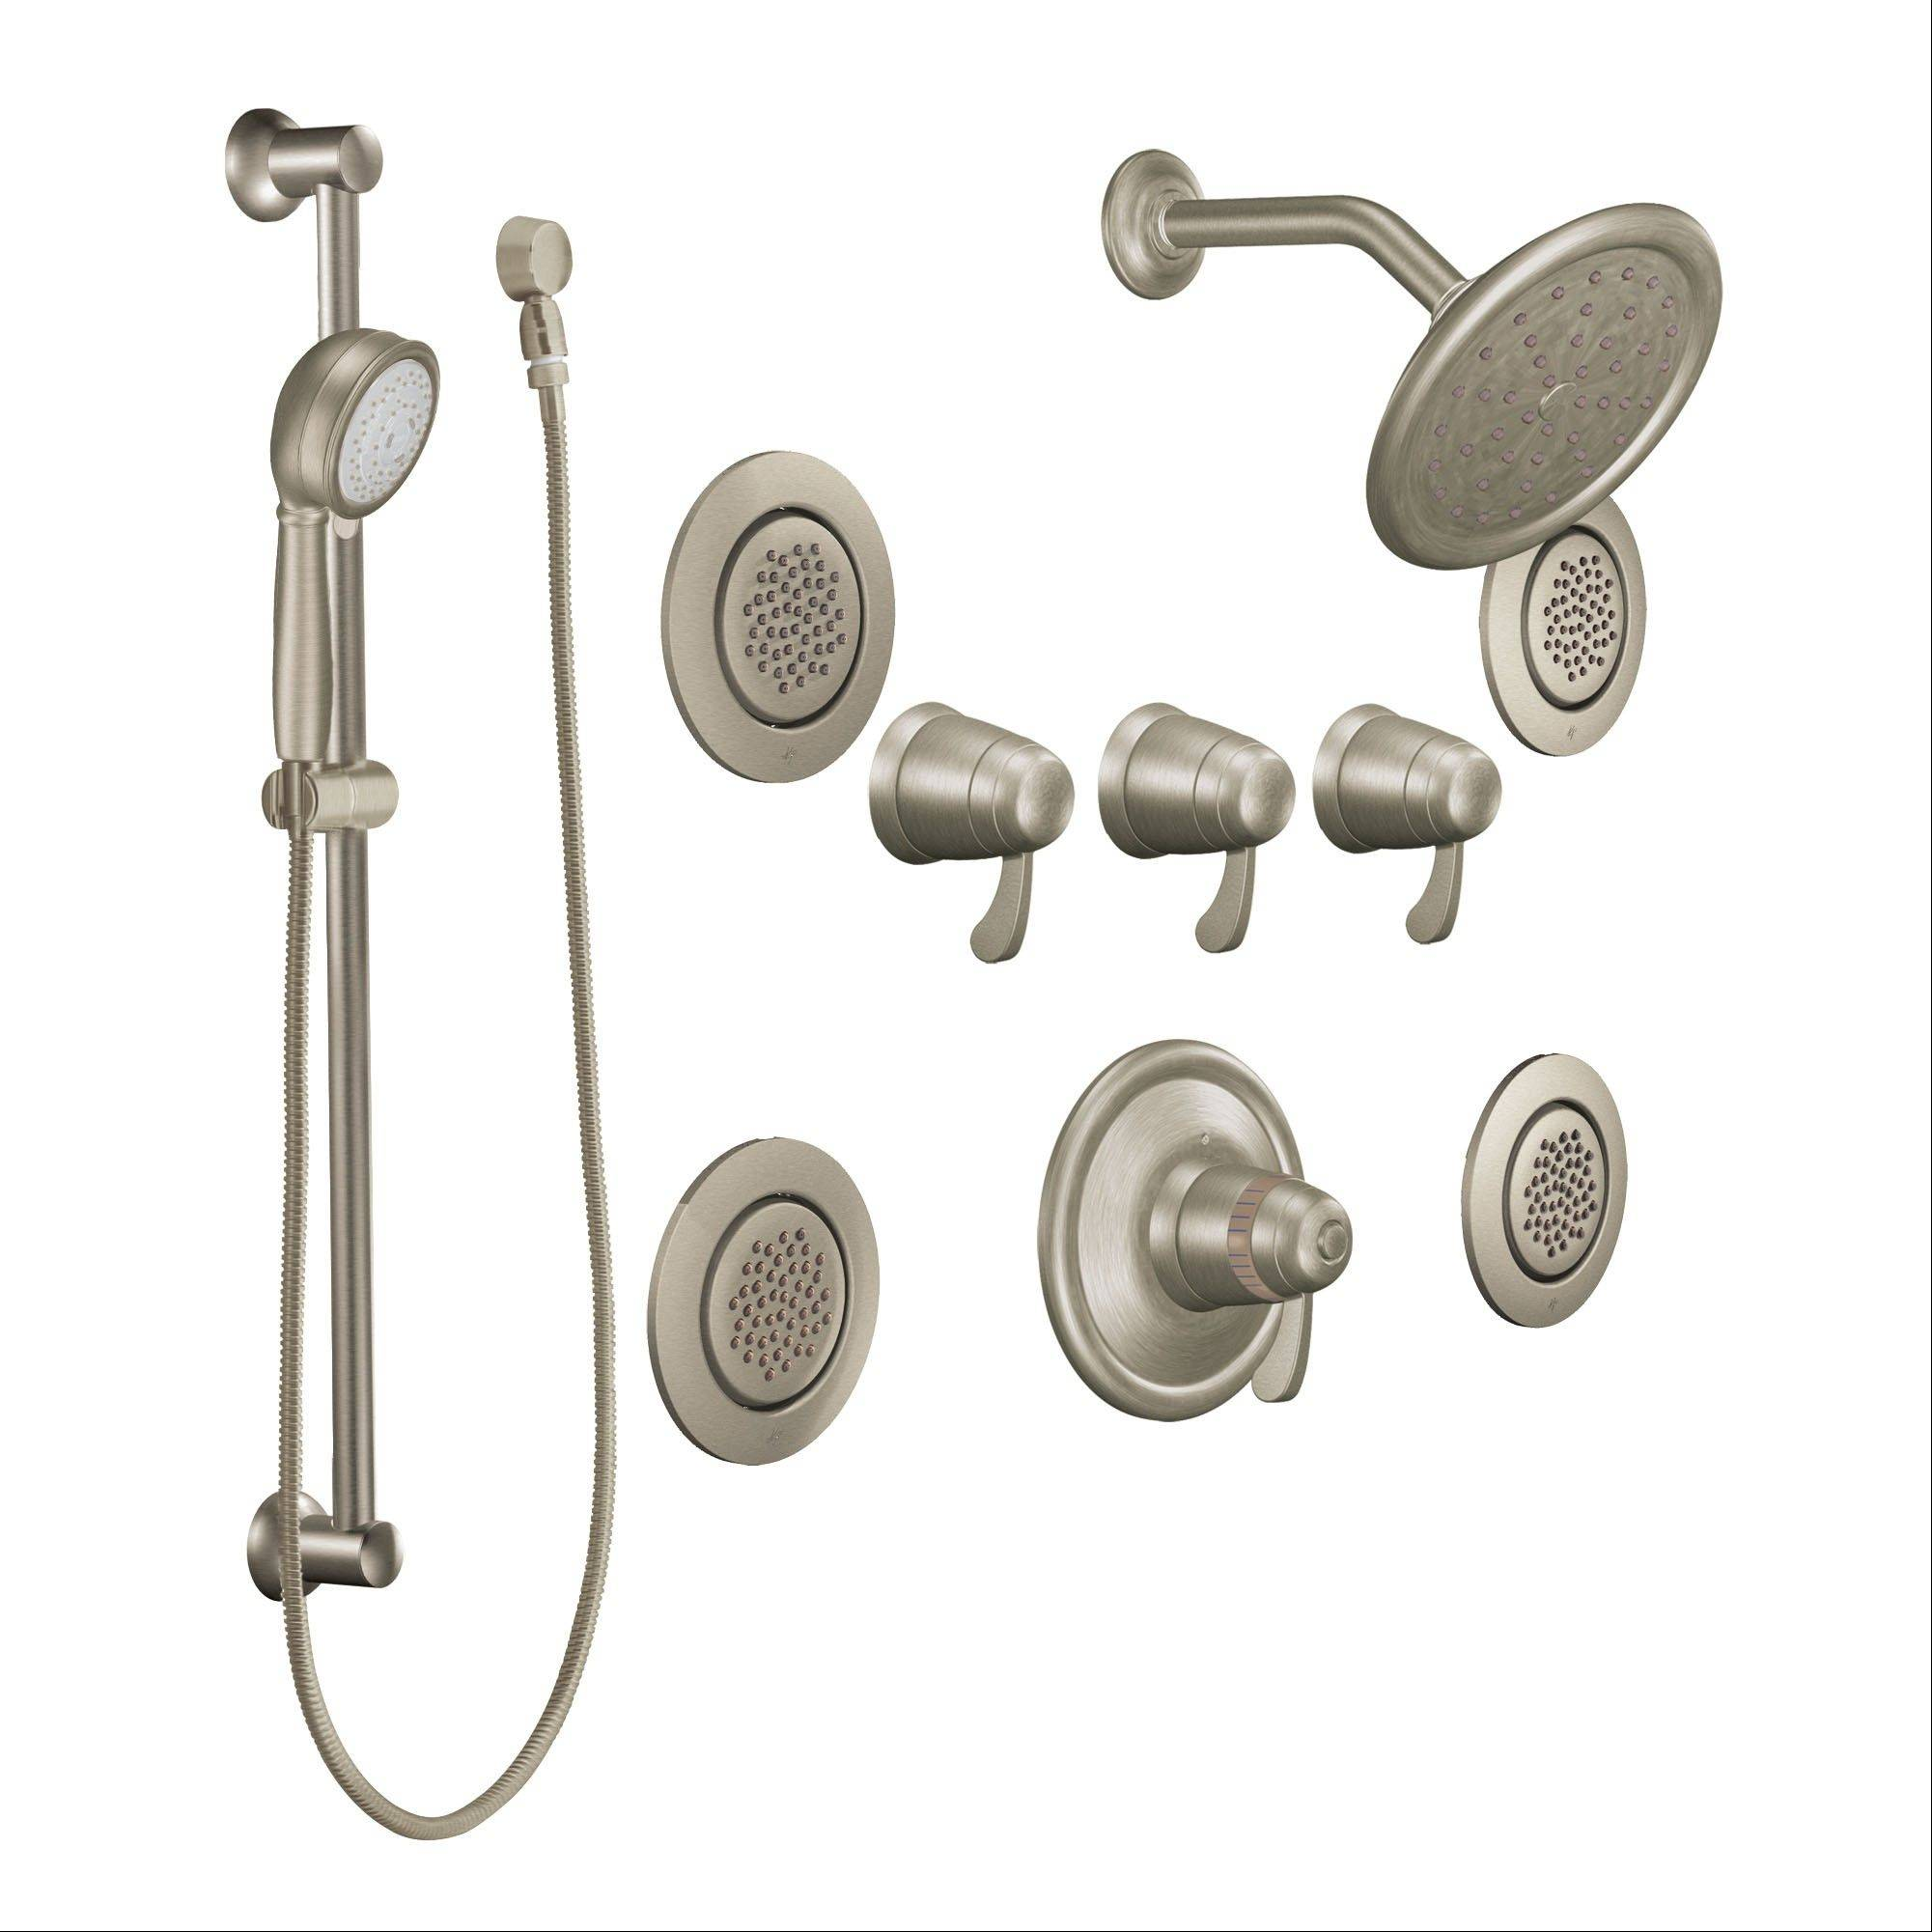 Gentle rain: Multi-spray shower sets add an element of luxury to the bathroom.